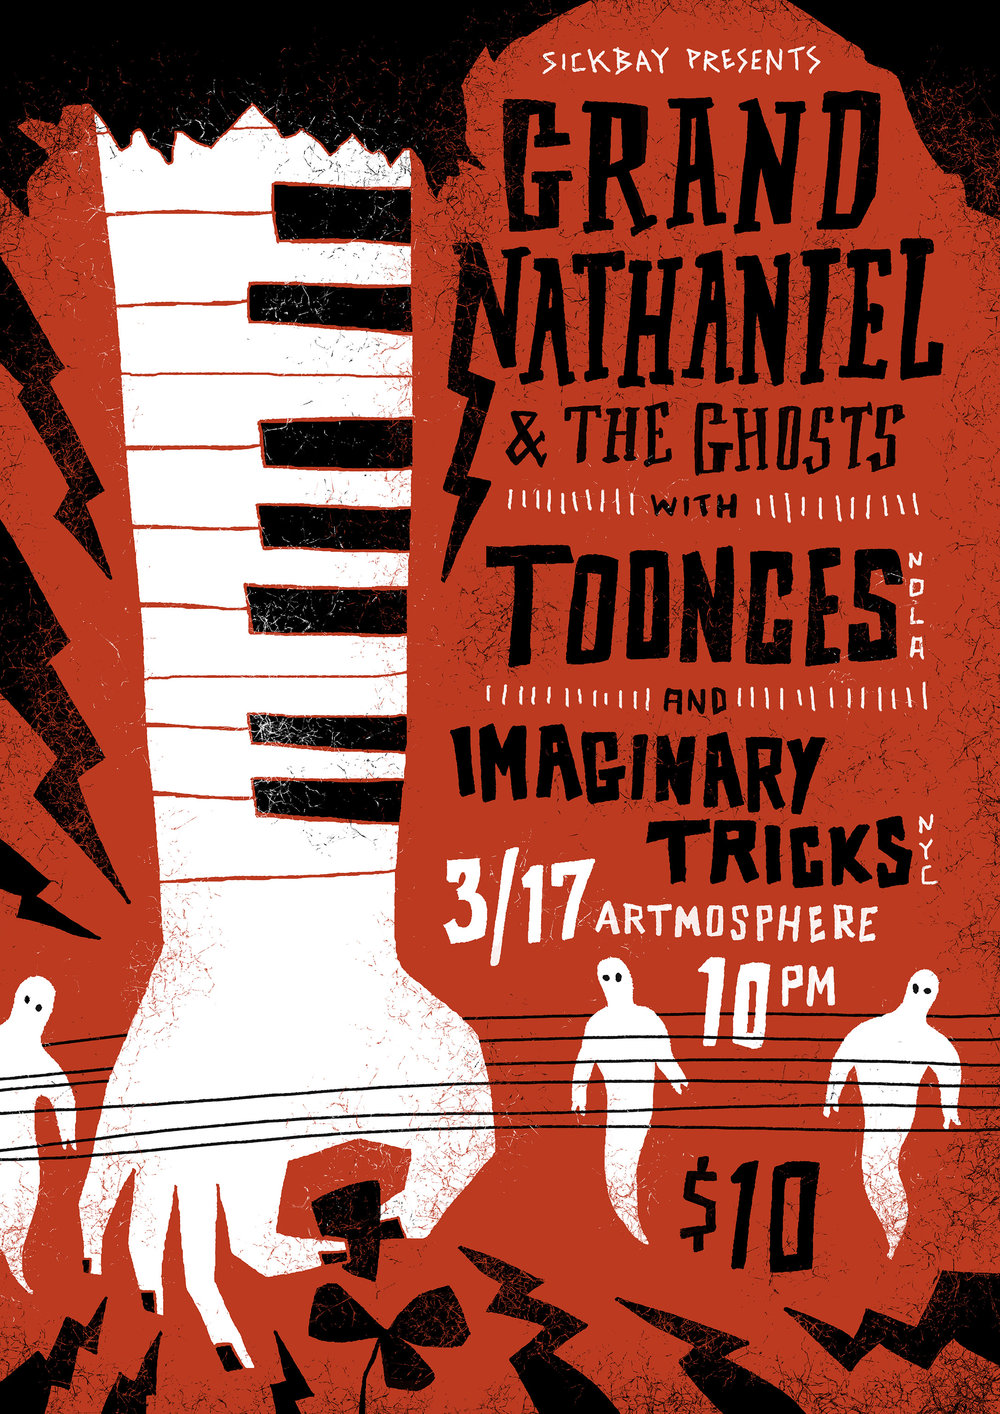 Grand Nathaniel & the Ghosts